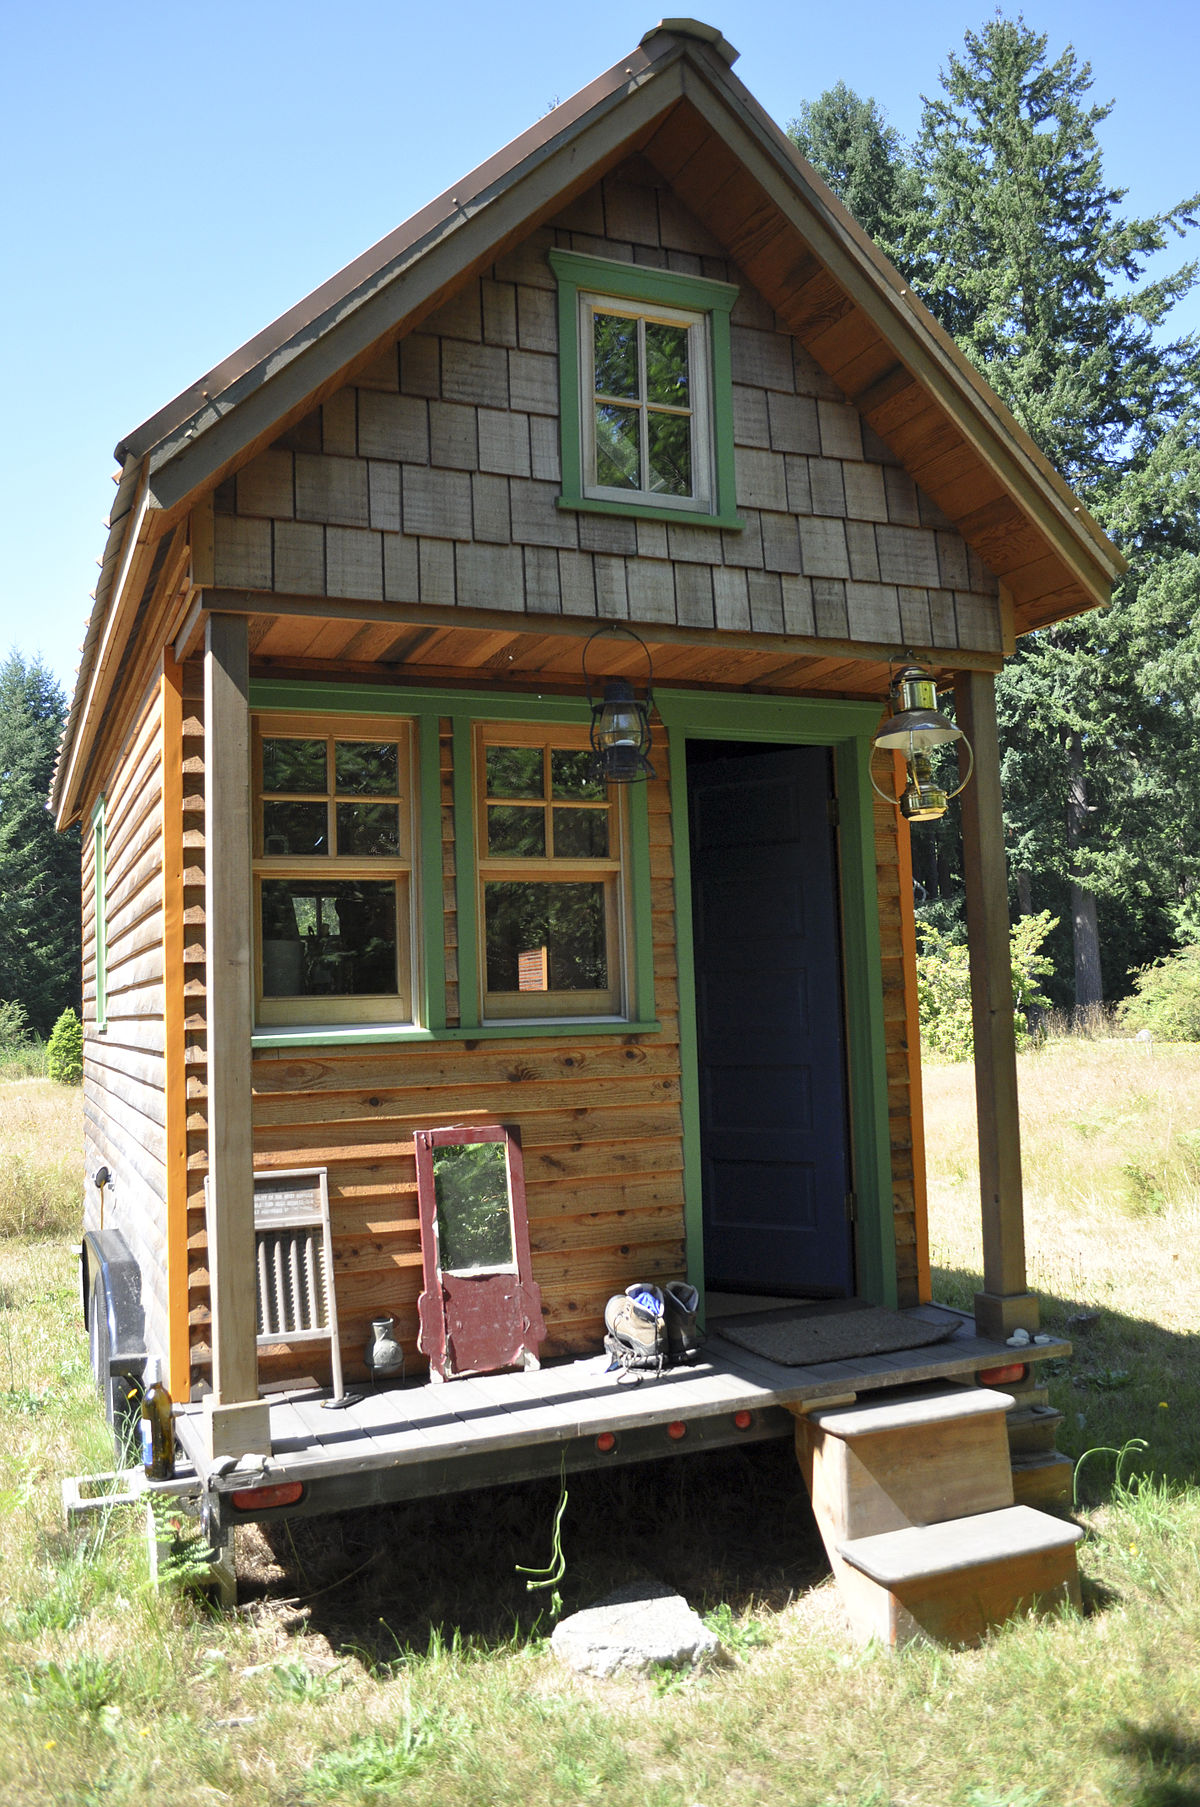 Housing Ideas tiny house movement - wikipedia